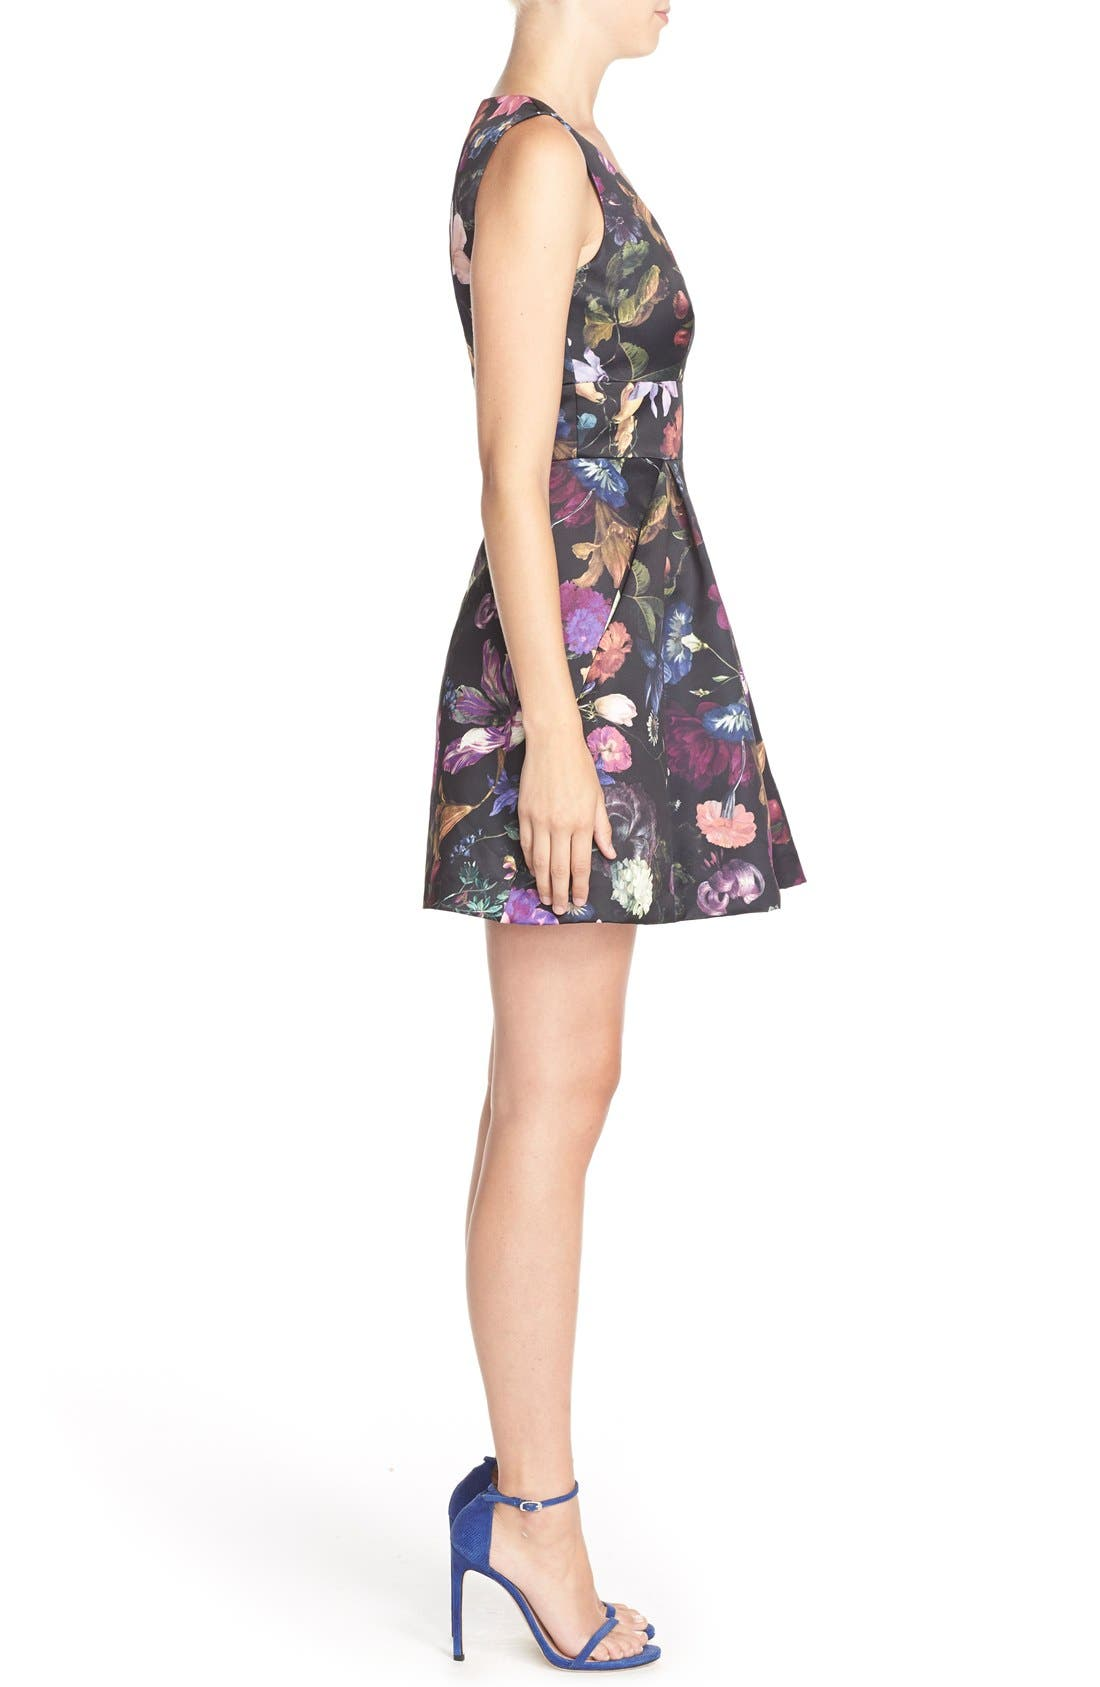 Cythia Rowley 'Winter' Floral Print Woven Fit & Flare Dress,                             Alternate thumbnail 3, color,                             009